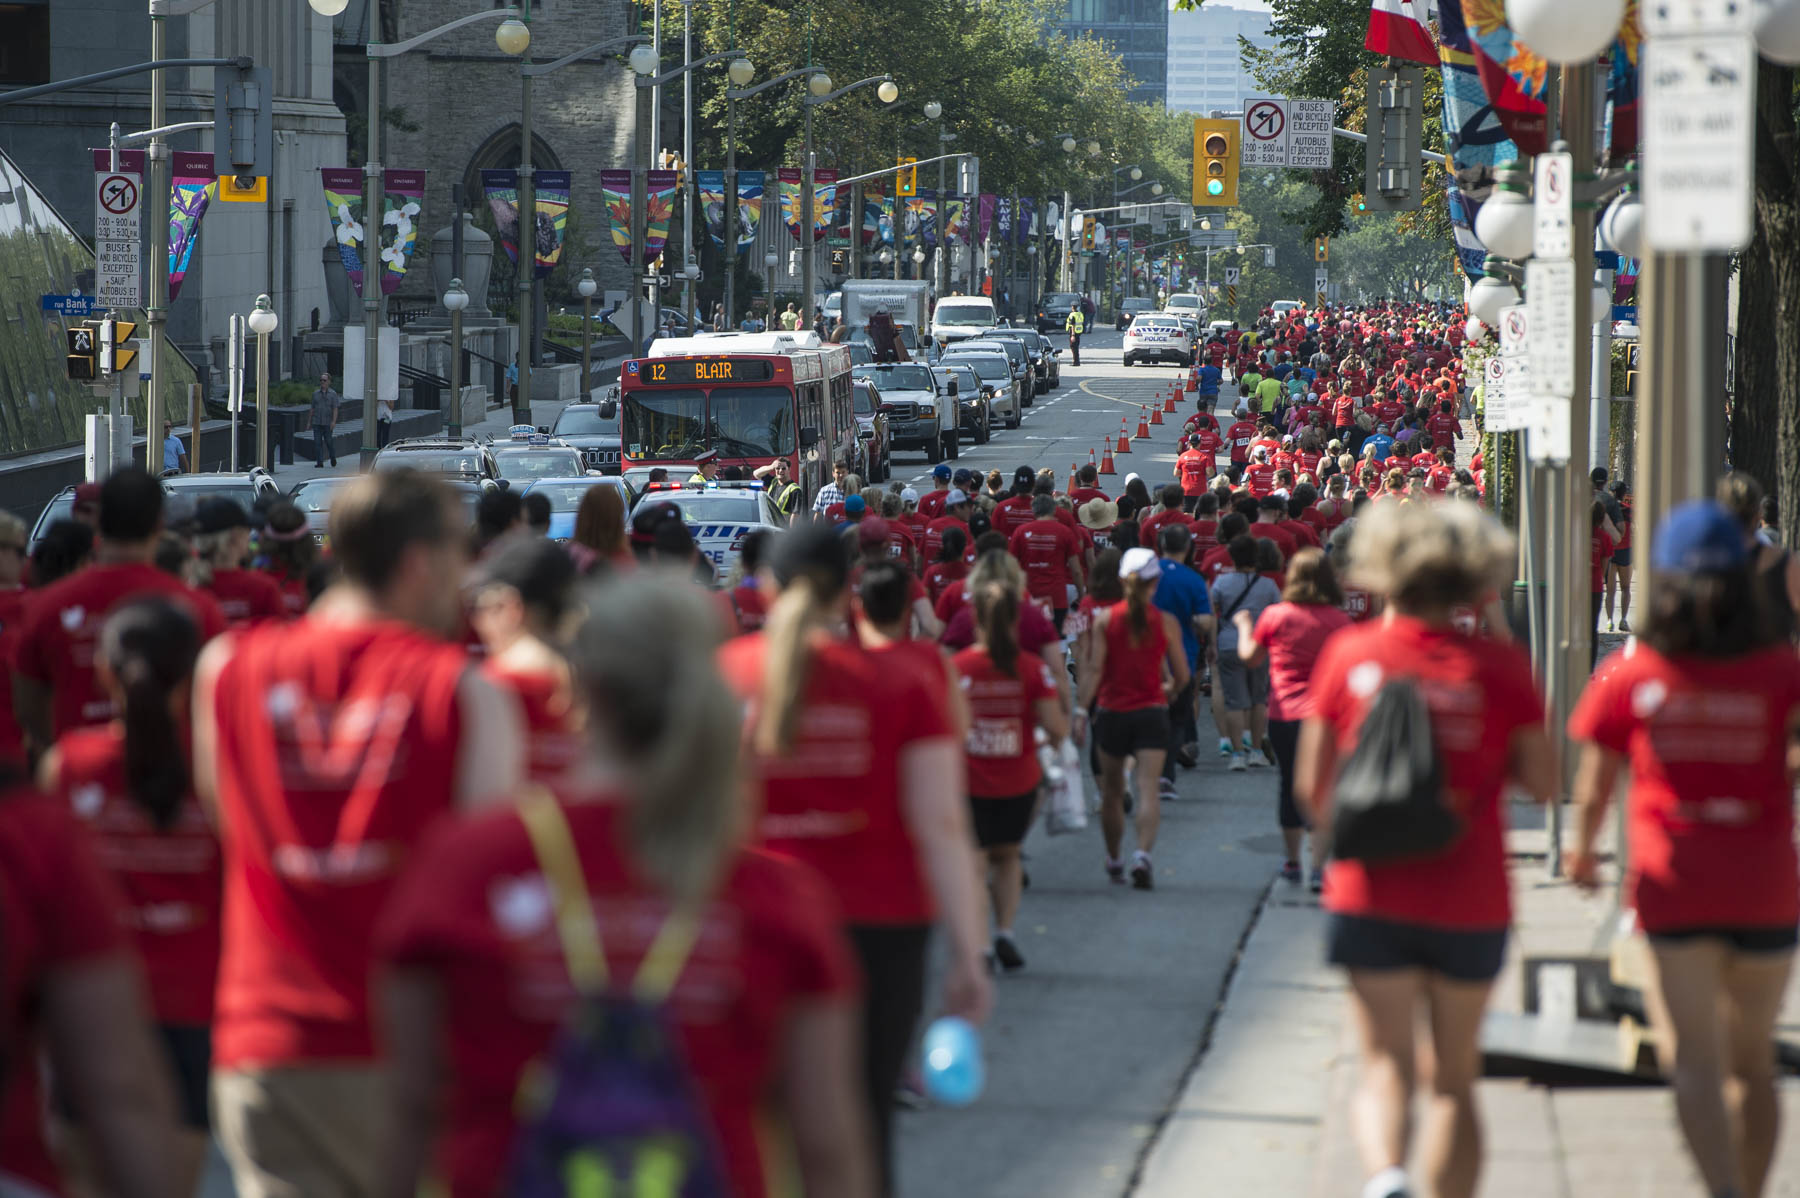 In the Canada's Capital Region, federal employees have contributed to annual fundraising campaigns since 1945.